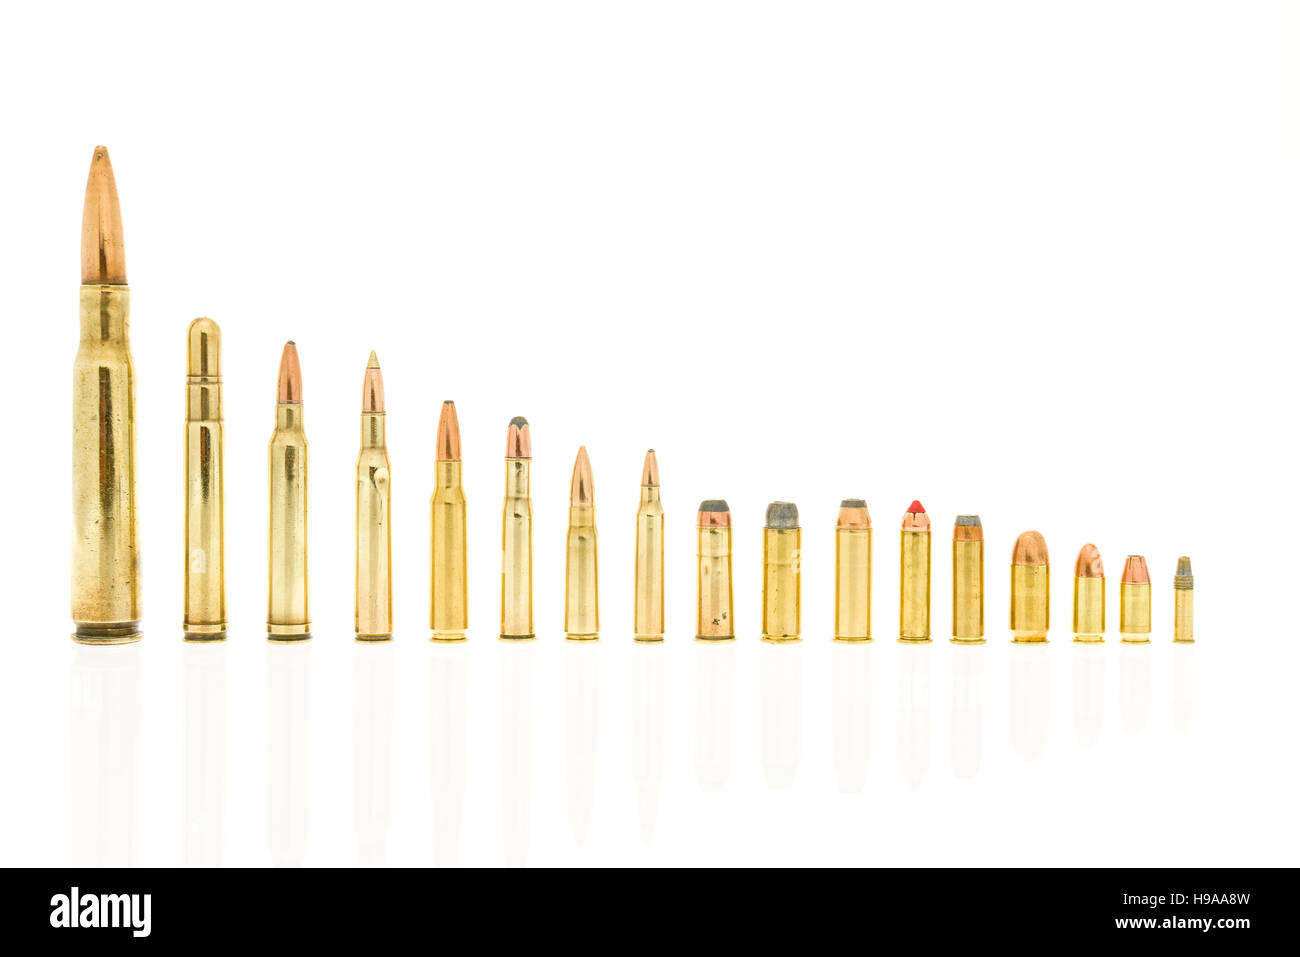 Calibers of bullets including 223, 5.56  39, 7.62, 30-30 win, 308 win, 270 win, 300 win mag, 416 rem mag, 50 BMG - Stock Image